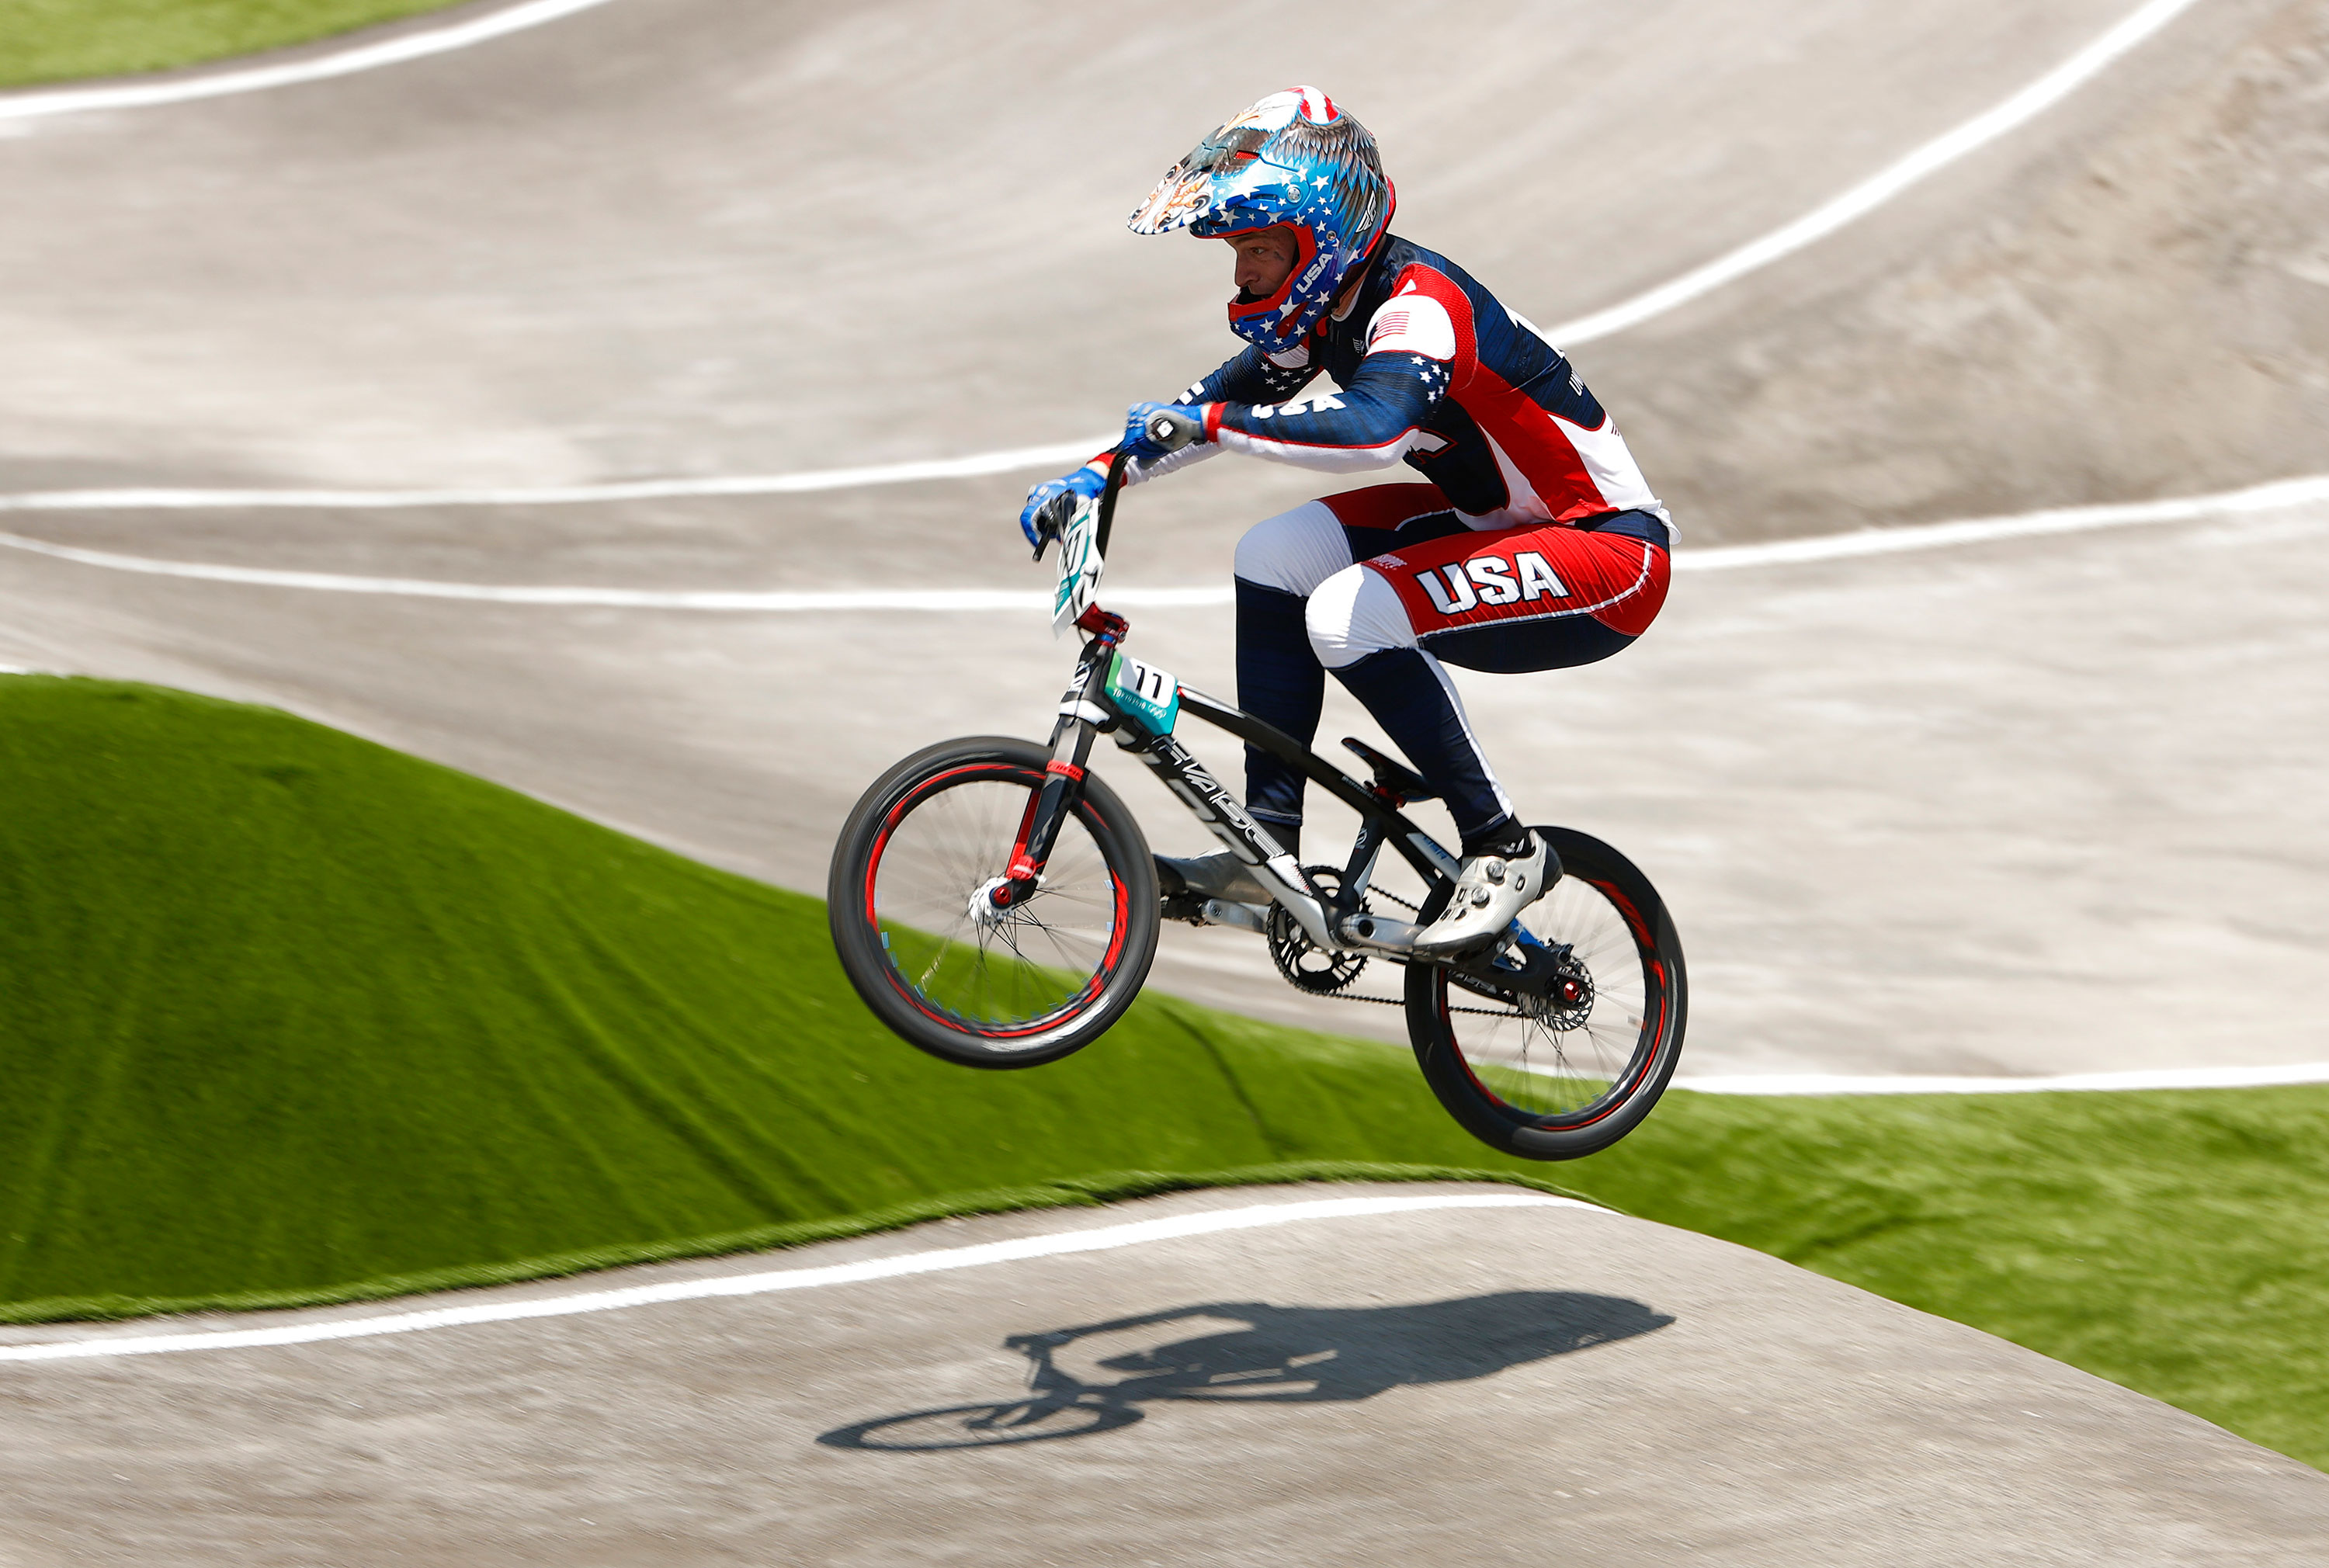 American Connor Fields competes during a BMX quarterfinal heat on July 29.